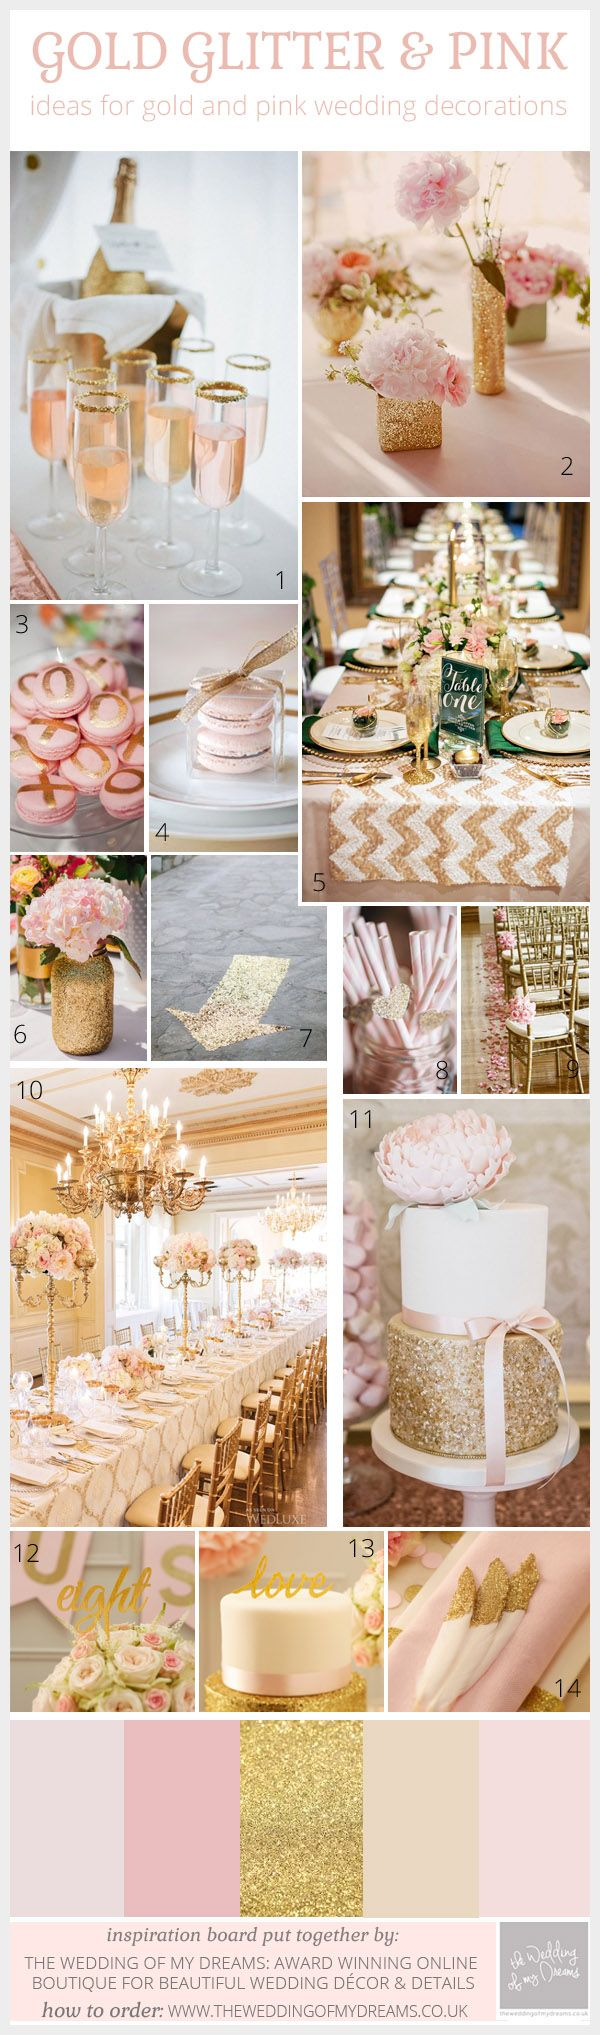 Pink And Gold Glitter Wedding Inspiration Board and Decoration Ideas